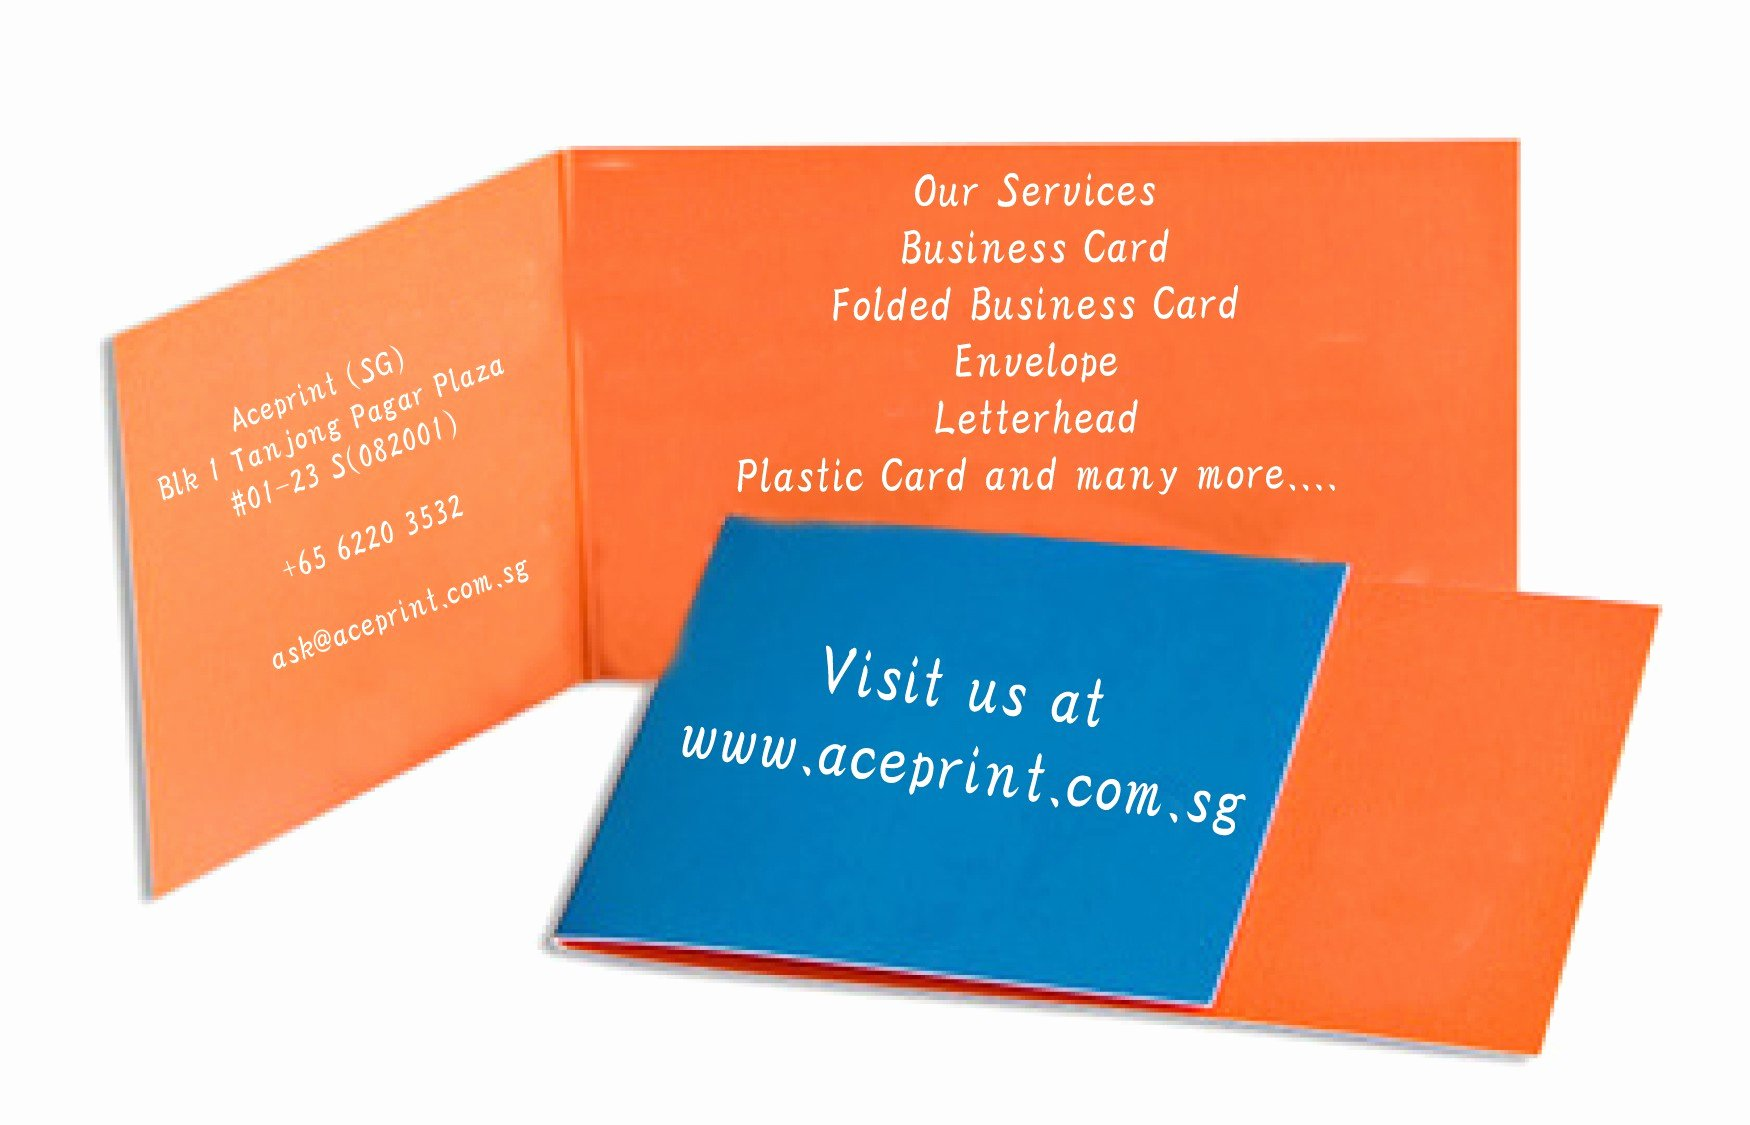 Foldable Business Card Template Elegant Foldable Business Card Template